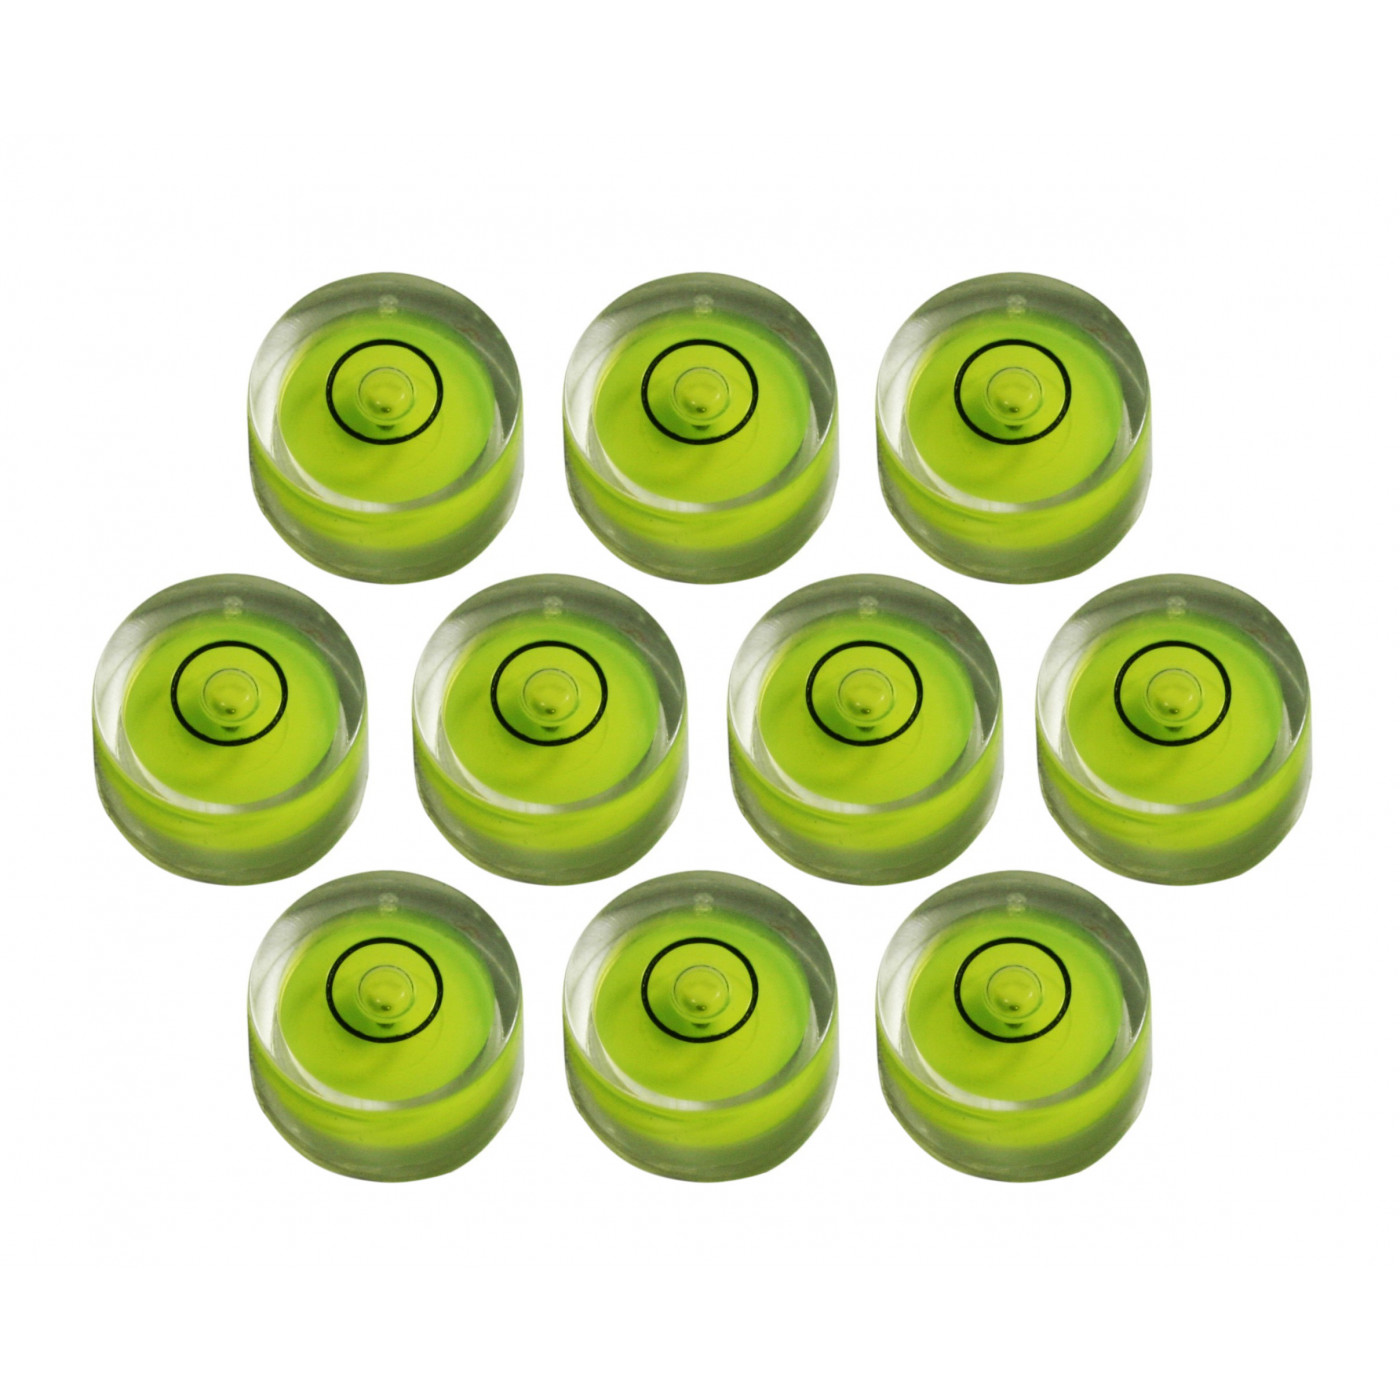 Set of 10 small round bubble levels size 1 (8x5.5 mm)  - 1